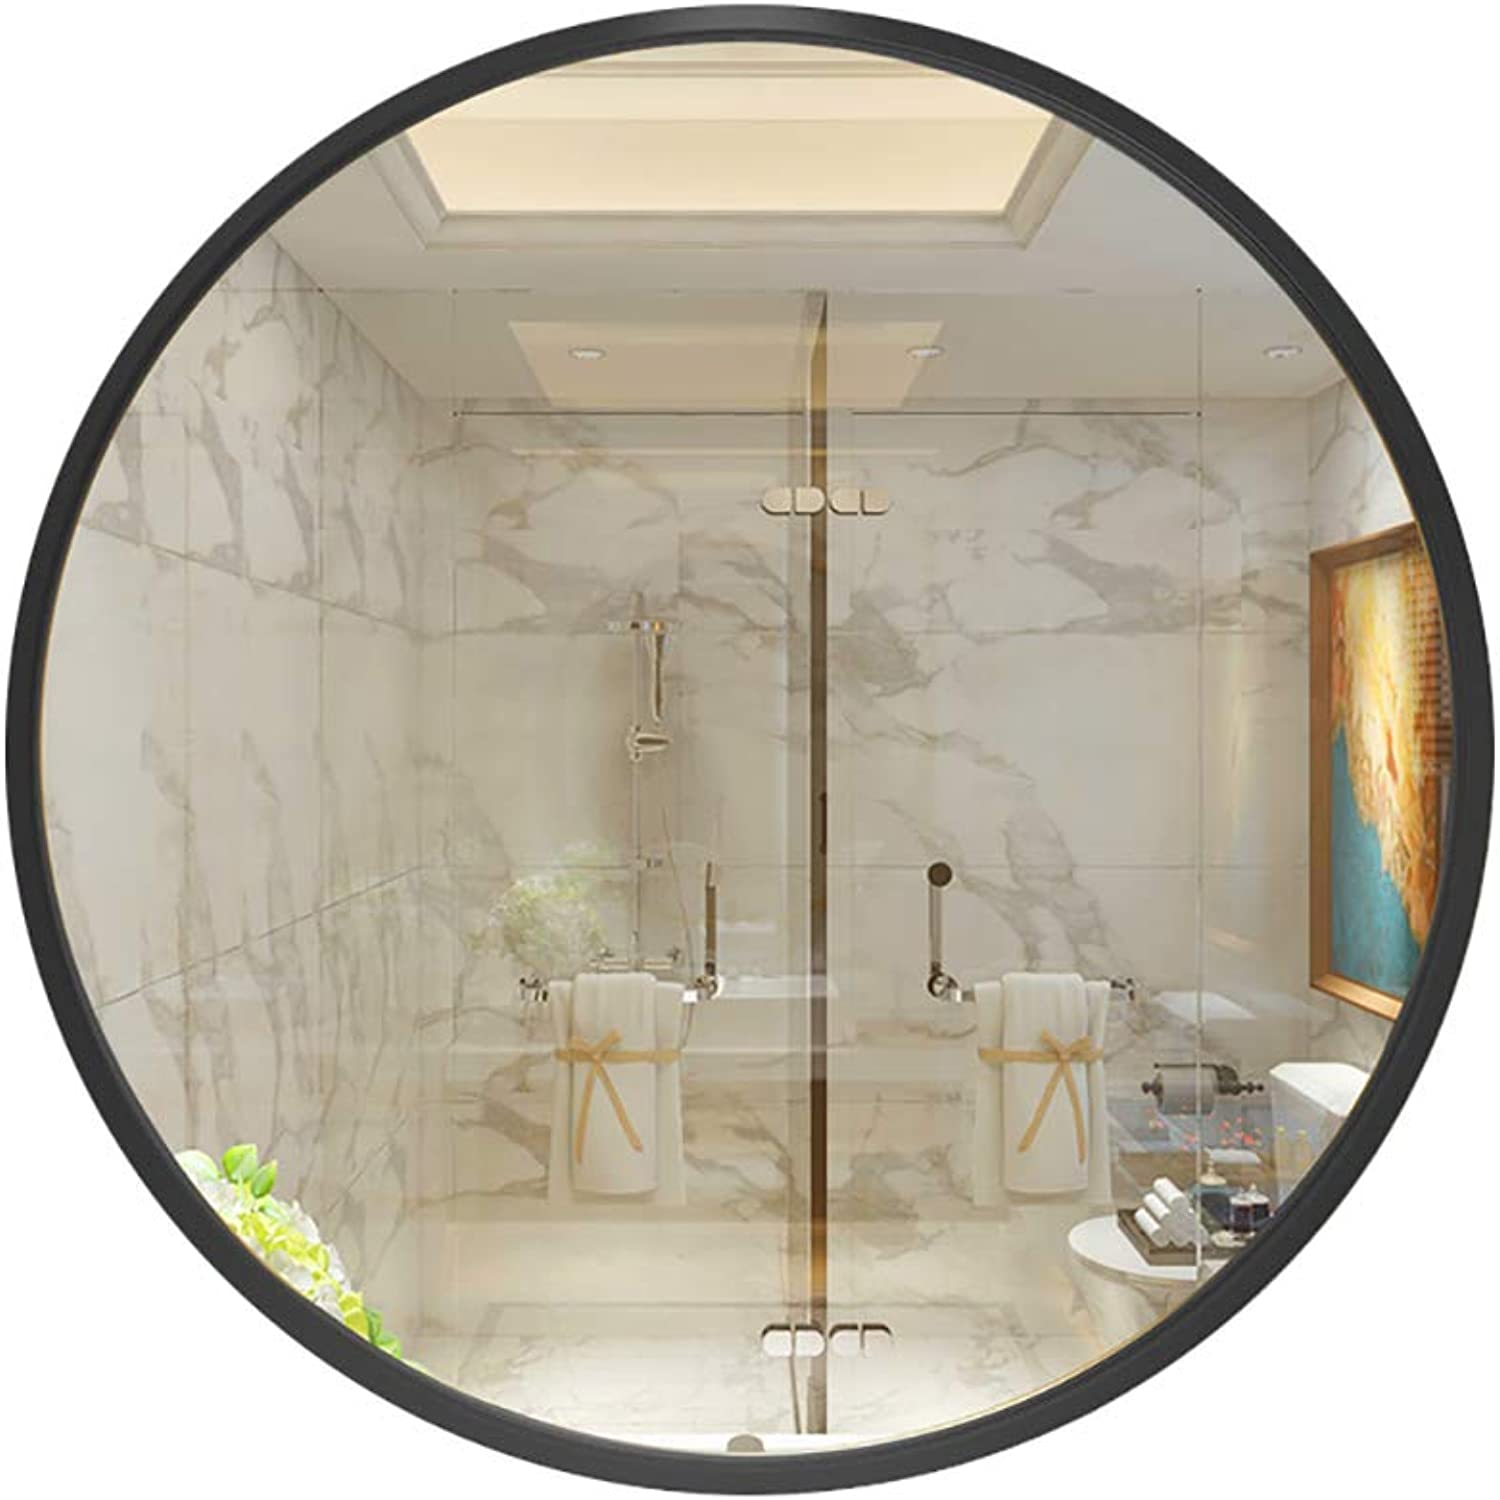 Round Mirror Bathroom Makeup Circular Wall Hanging Toilet Decoration Hanging Mirror European Washing Black40 50 60 70 80cm